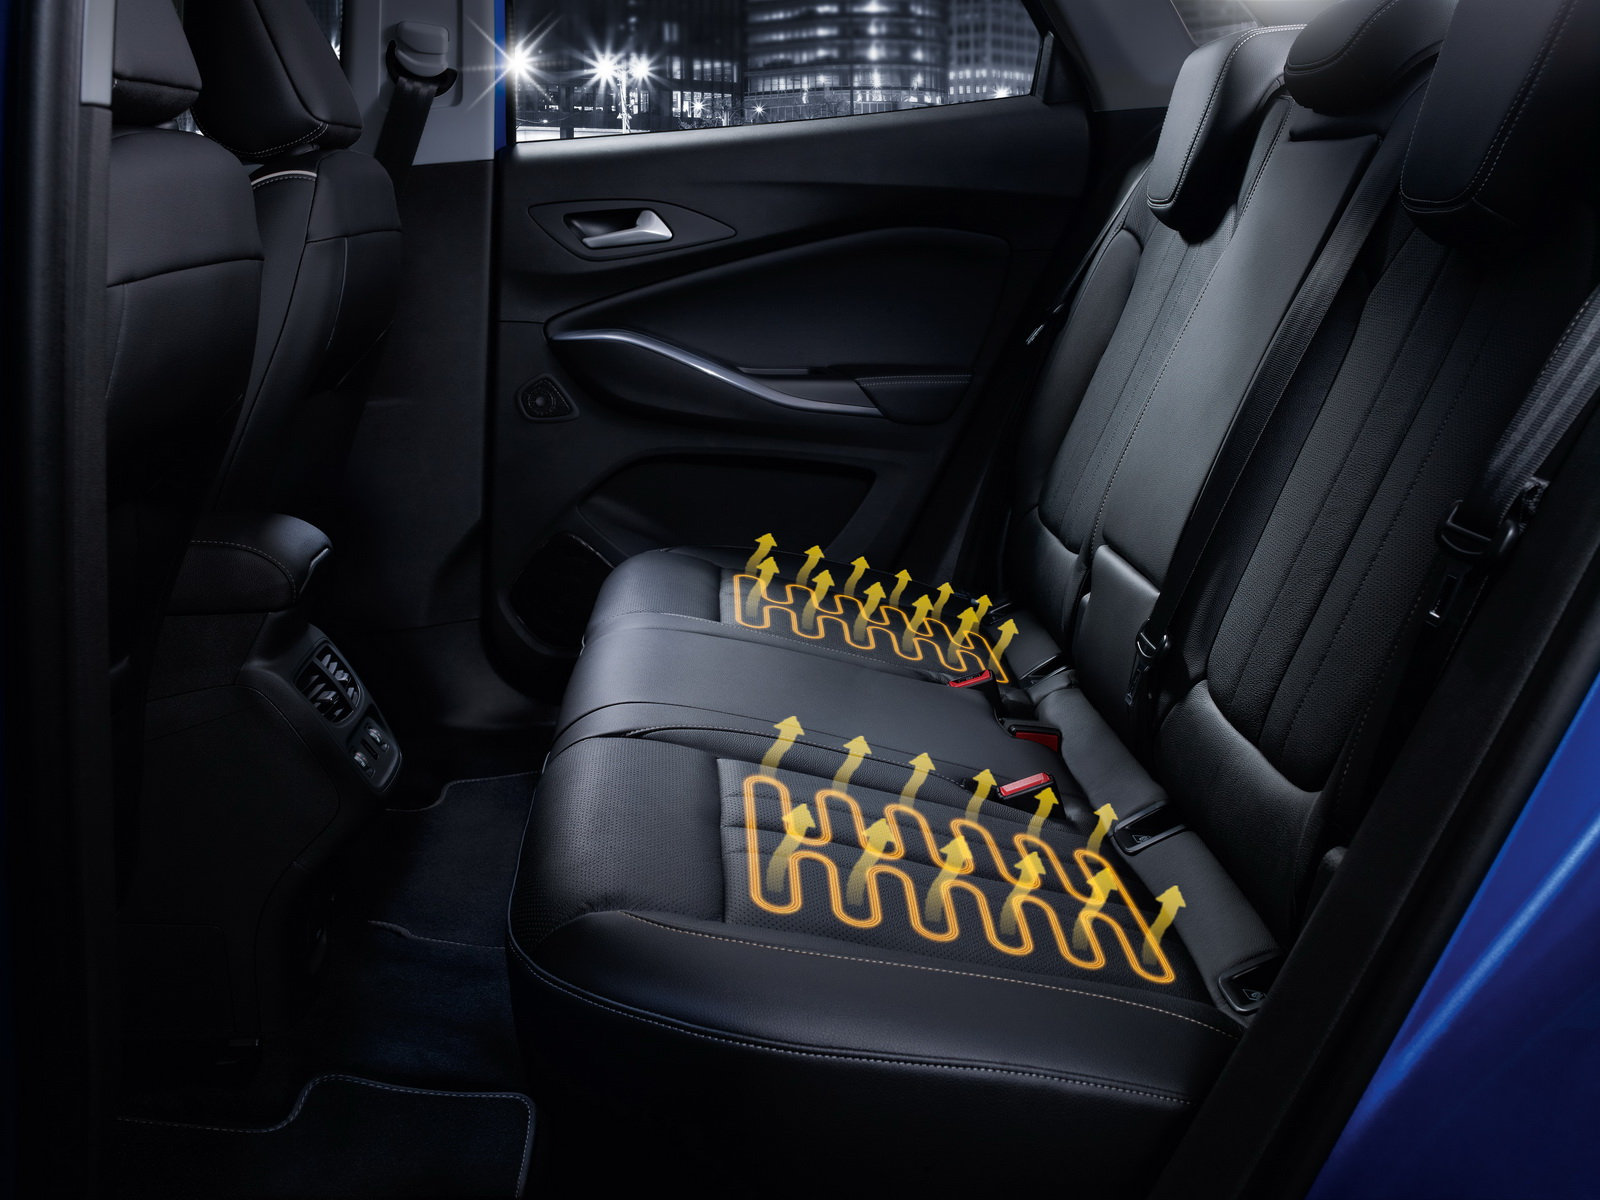 Warm and cosy, all round: In the Opel Grandland X, not only the front-seat occupants but also the passengers on the outer rear seats get to enjoy seat heating.